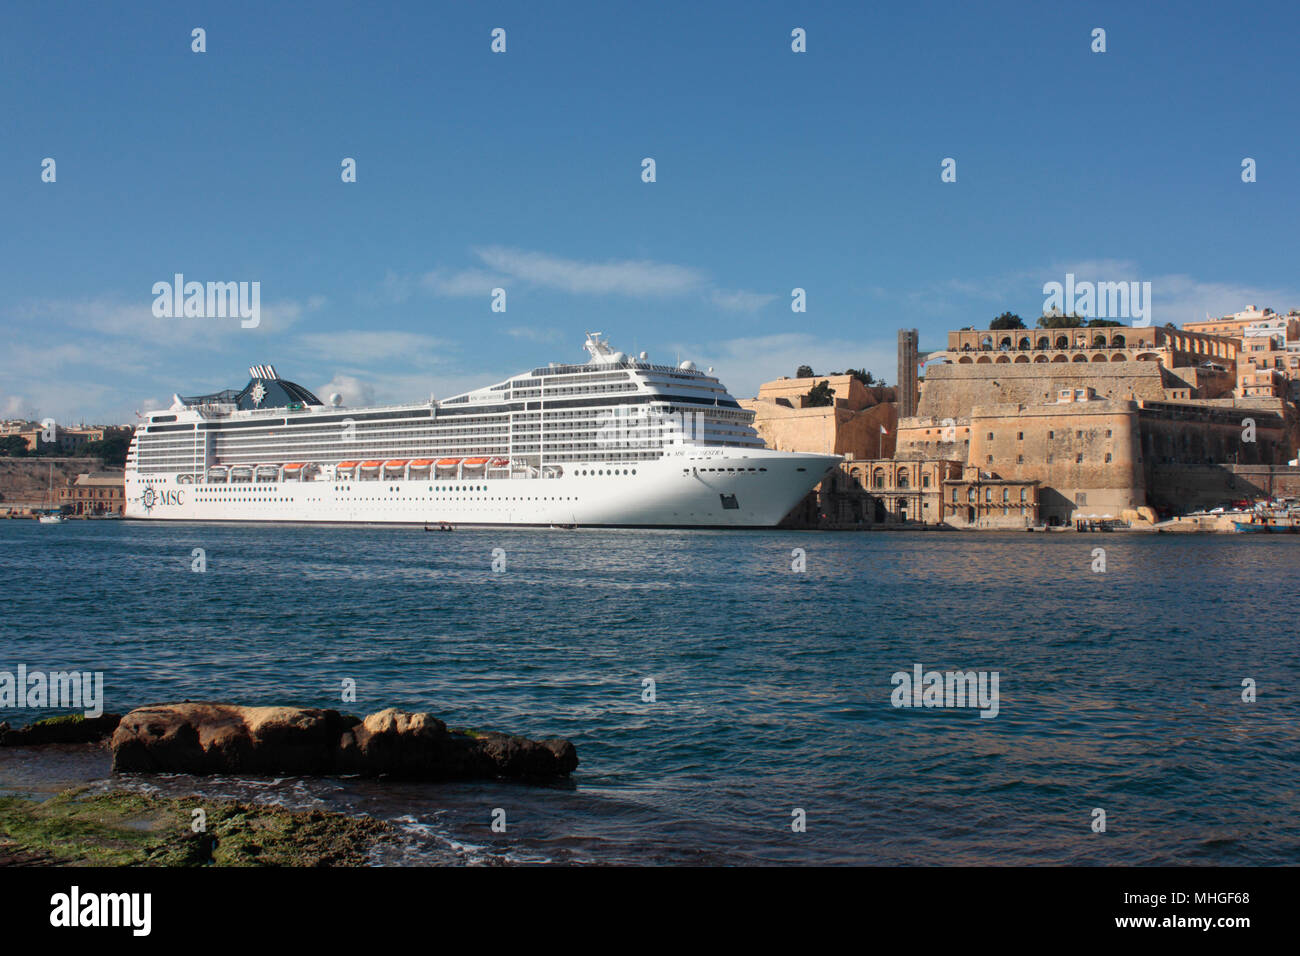 The cruise ship or liner MSC Orchestra in Malta's Grand Harbour next to the Valletta fortifications. Travel and tourism in the Mediterranean Sea. - Stock Image